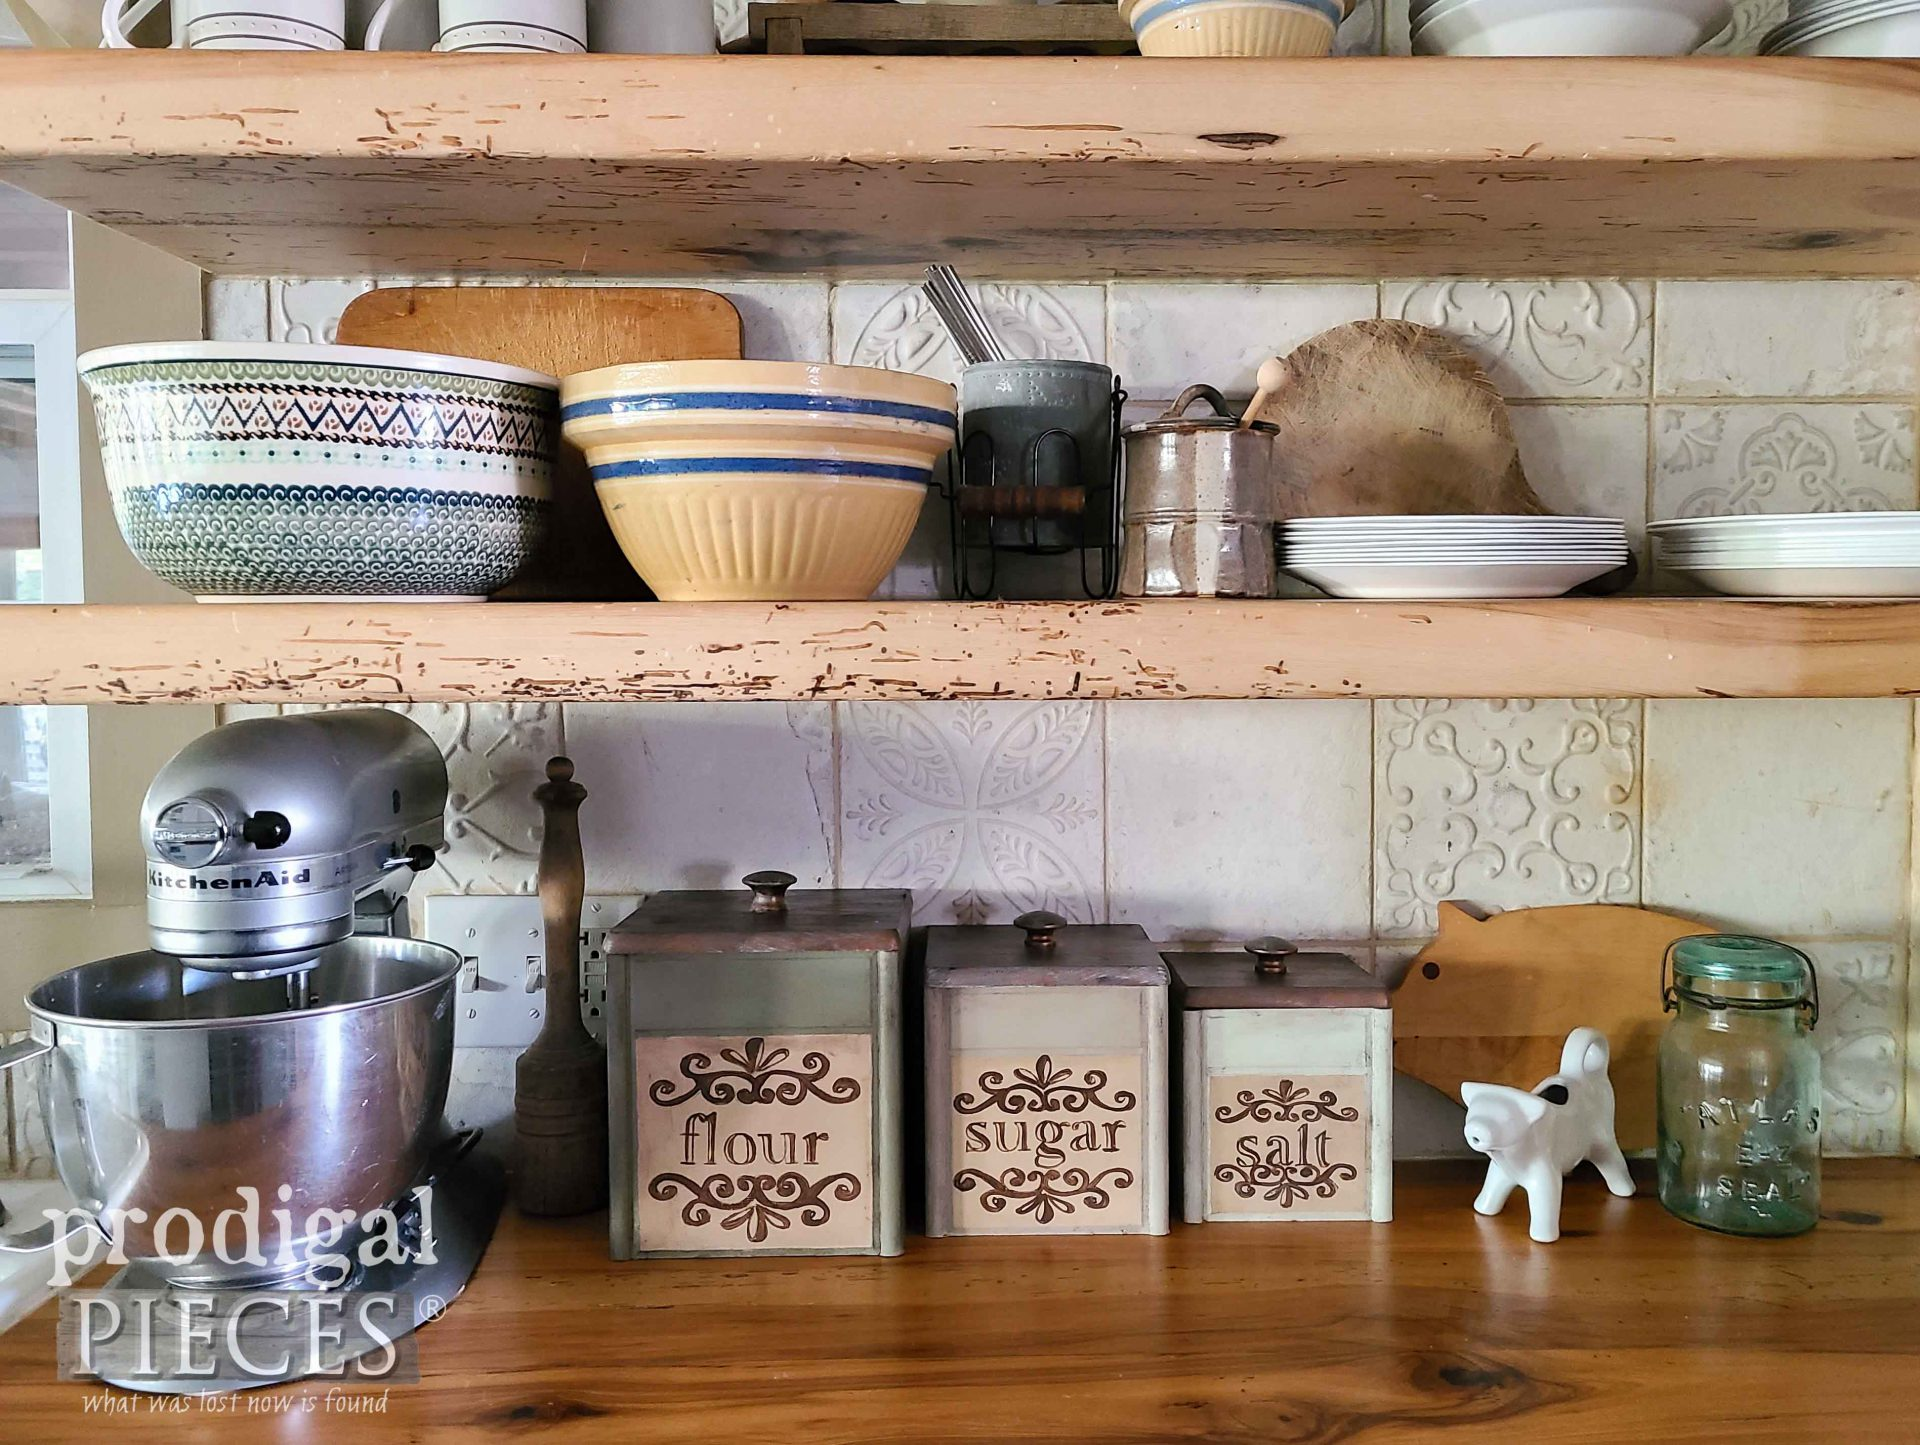 Farmhouse Style Thrifted Kitchen Canisters Made Over by Larissa of Prodigal Pieces | prodigalpieces.com #prodigalpieces #diy #home #farmhouse #kitchen